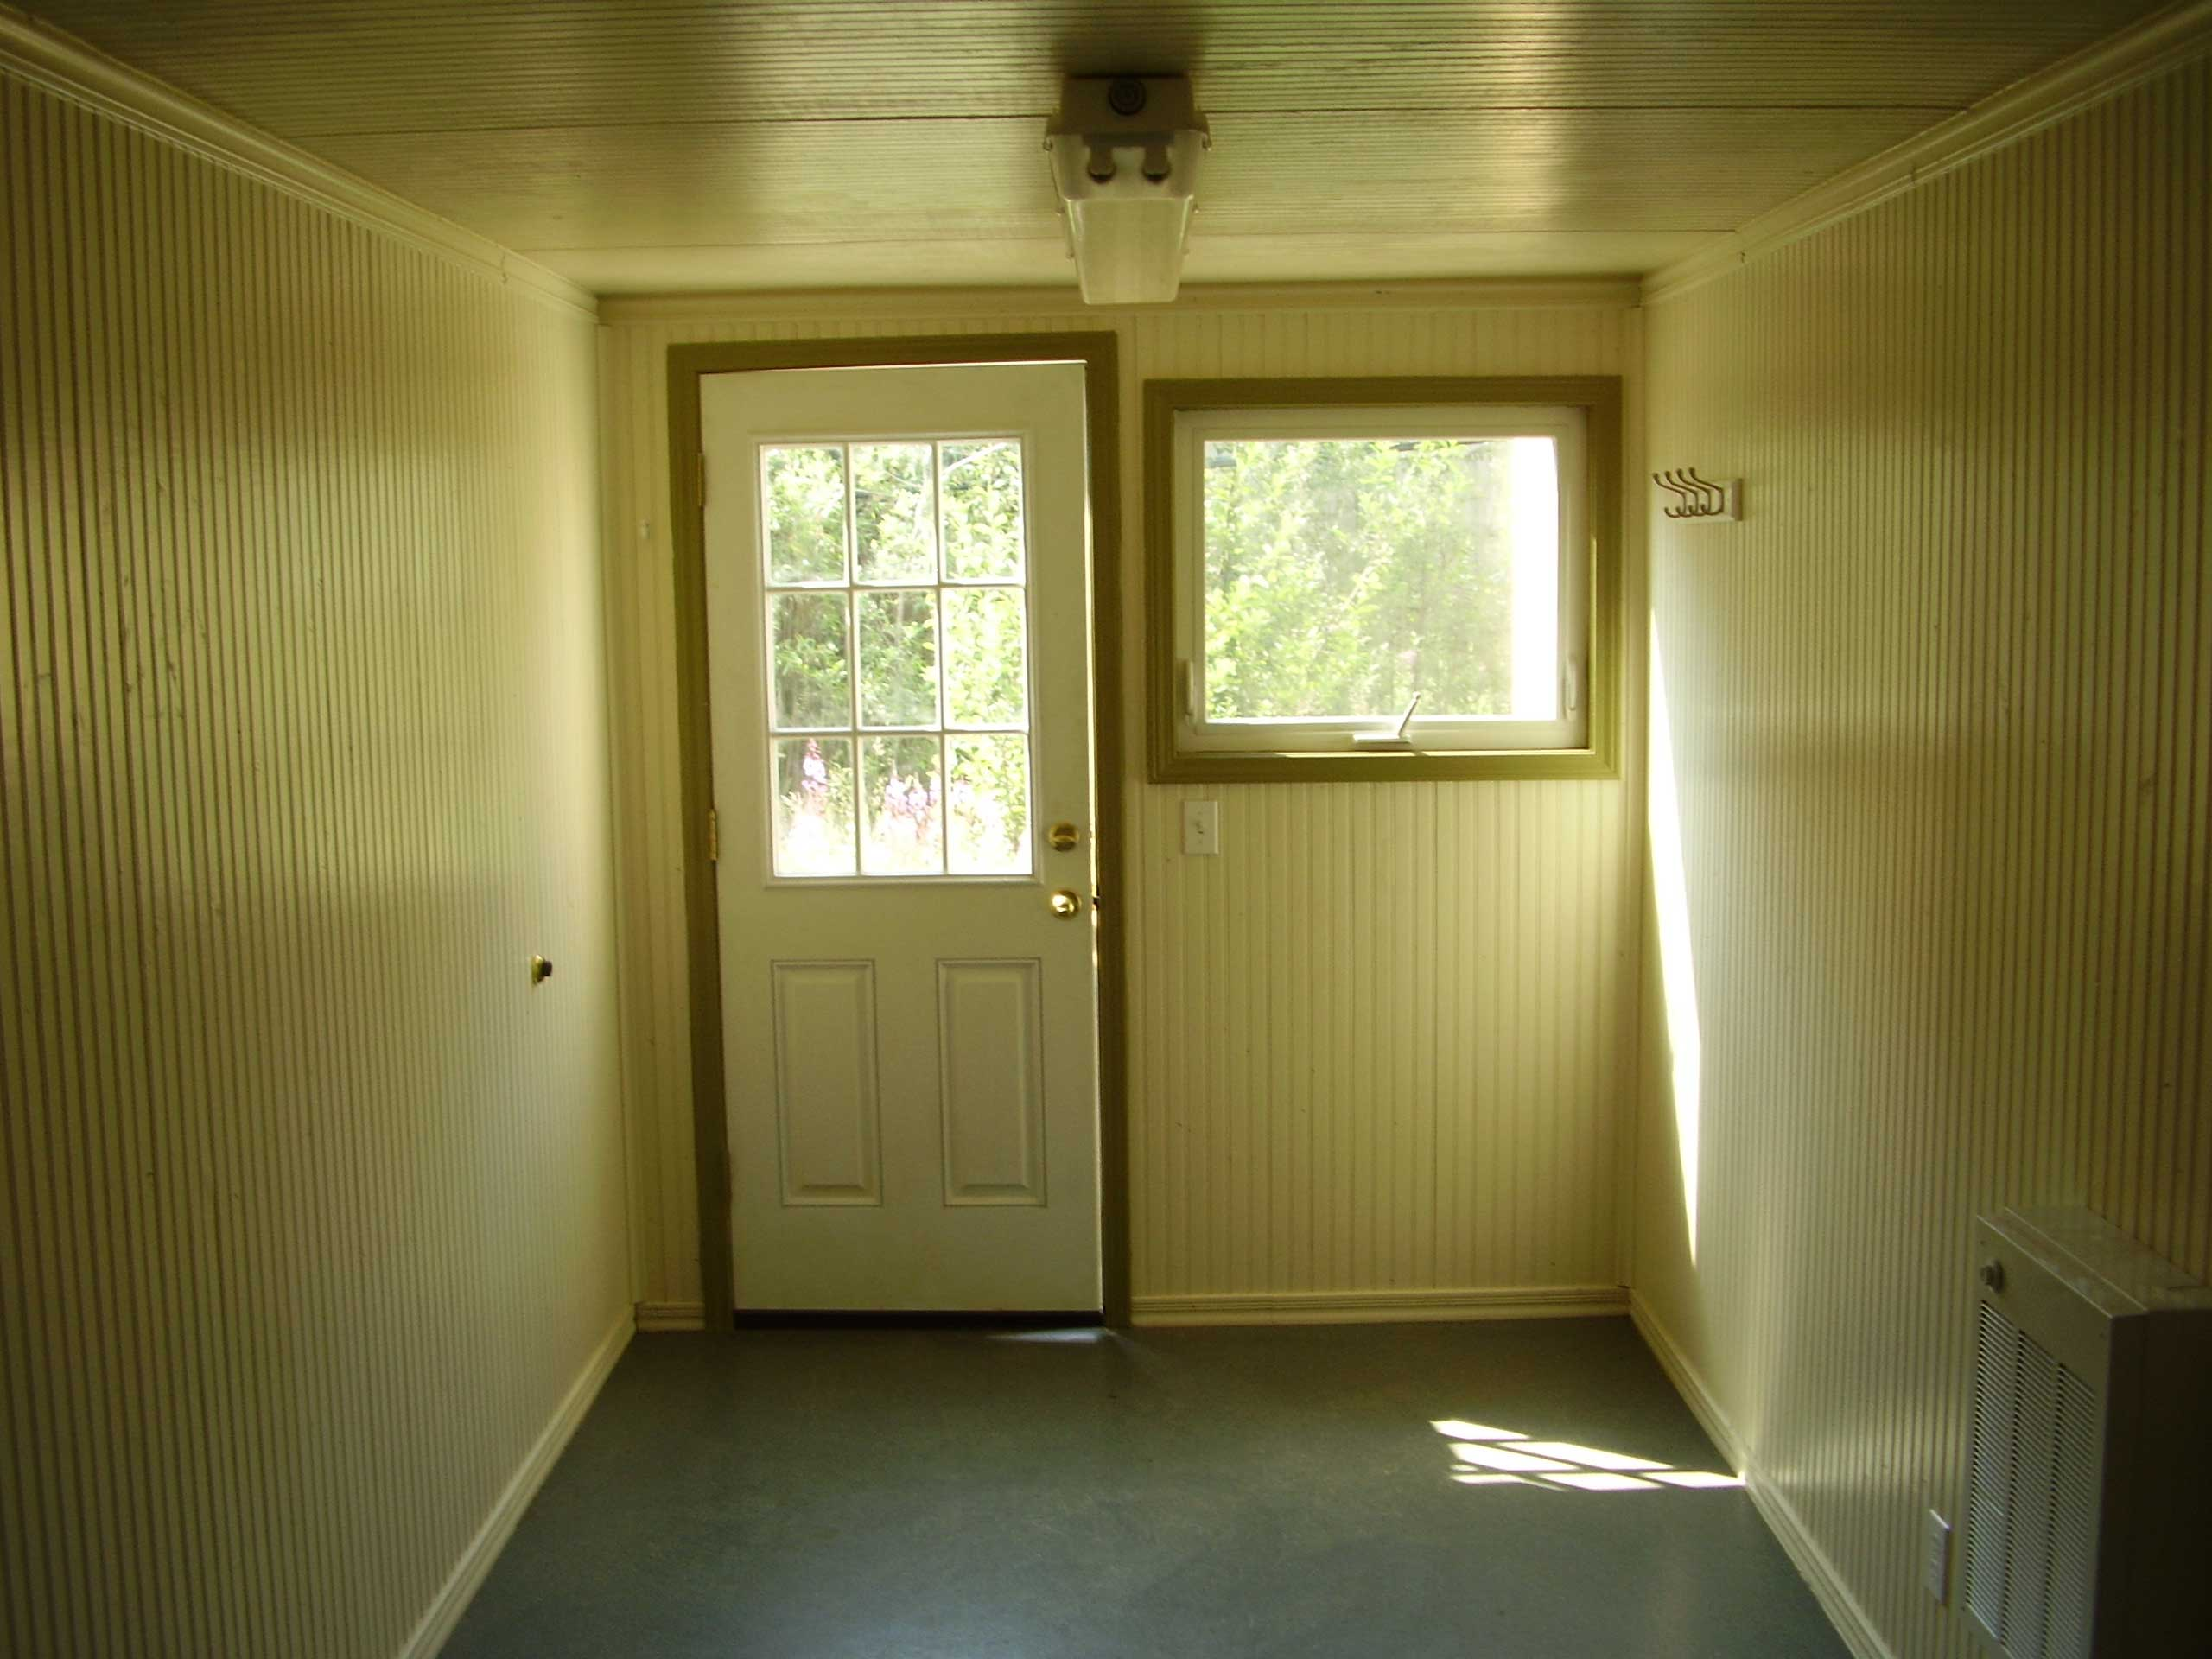 Office entry door, window-panes for natural lighting, painted interior wood-panelling with commercial carpet, wall heating system, and fluorescent lighting fixtures for a comfortable working environment for employees as either a temporary on-site office space, or off-site field office.